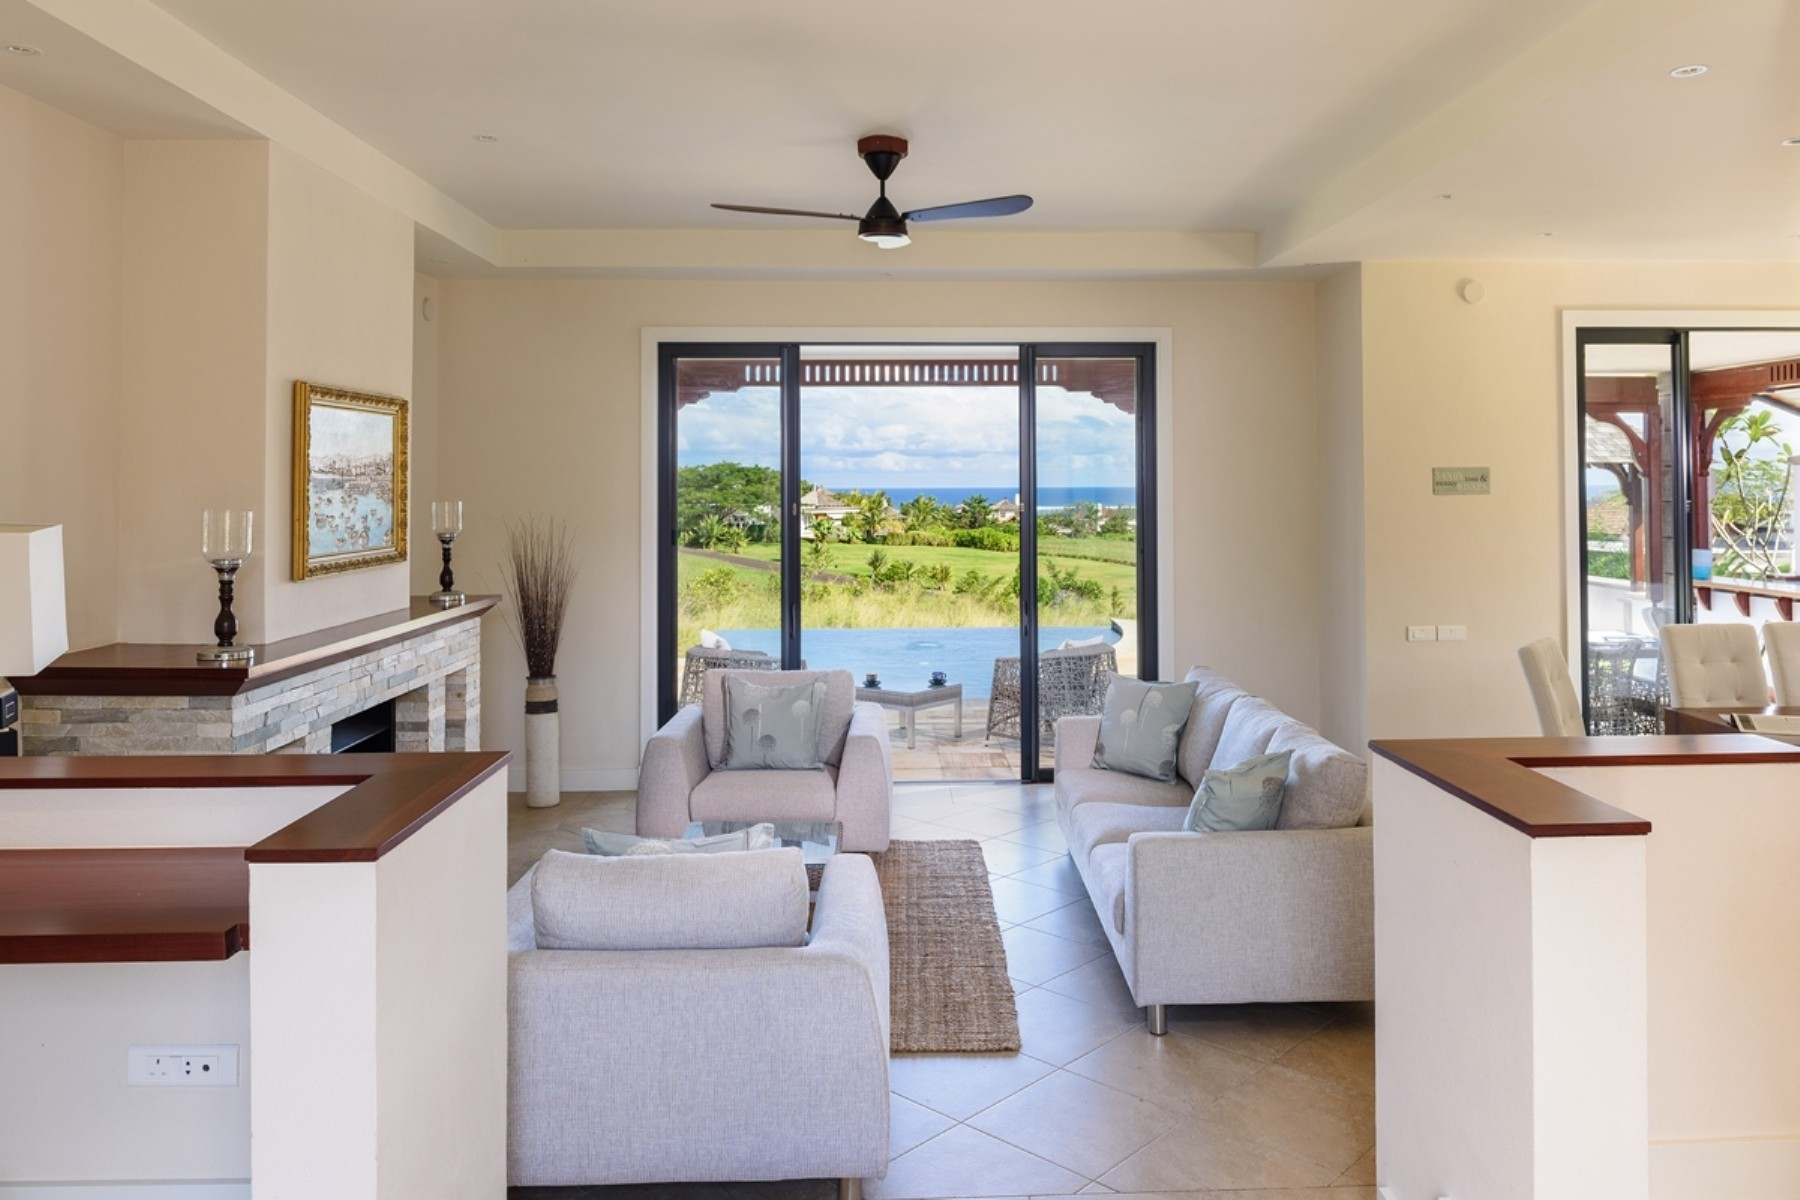 Single Family Home for Sale at 123 Villas Valriche Bel Ombre, Savanne, Mauritius